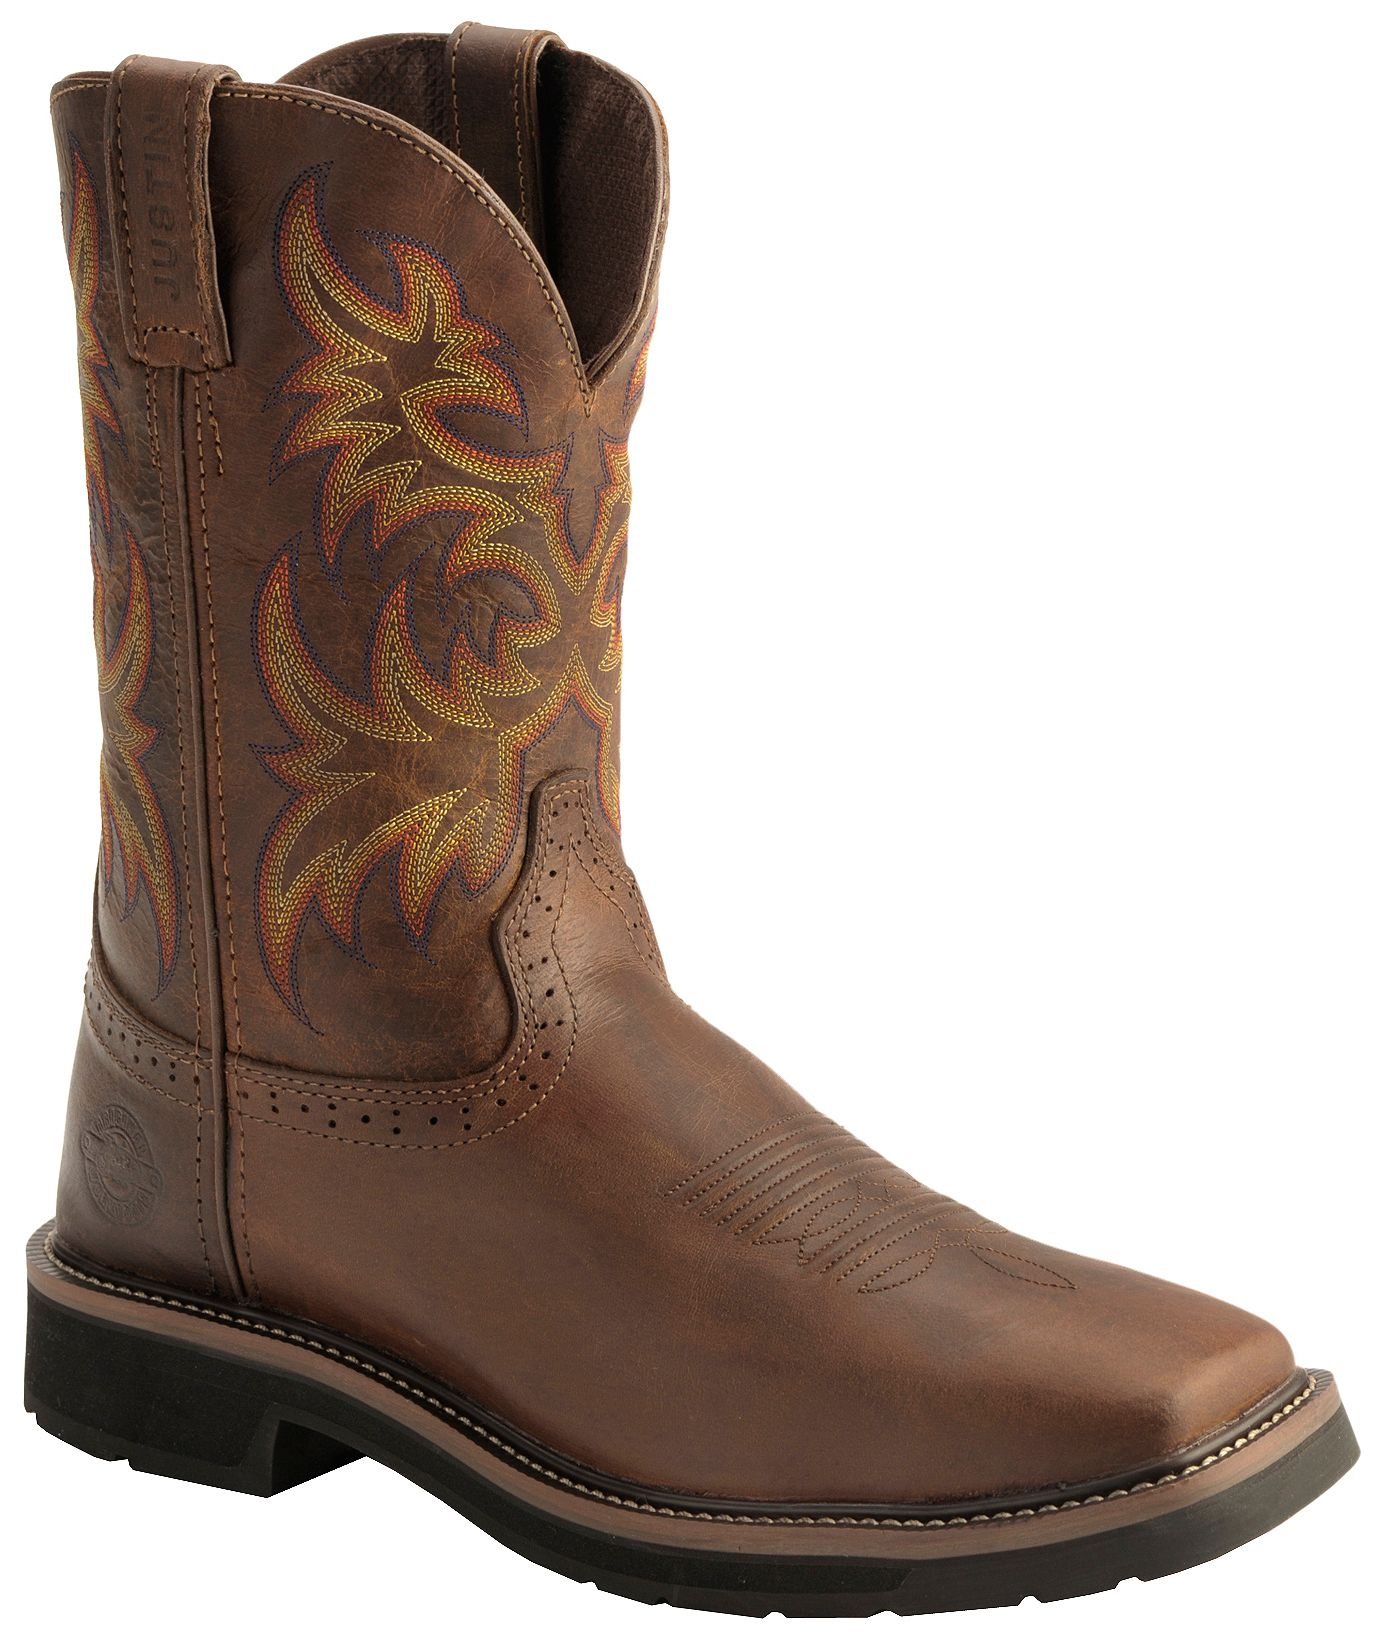 Justin Men S Stampede Driller Electrical Hazard Work Boots